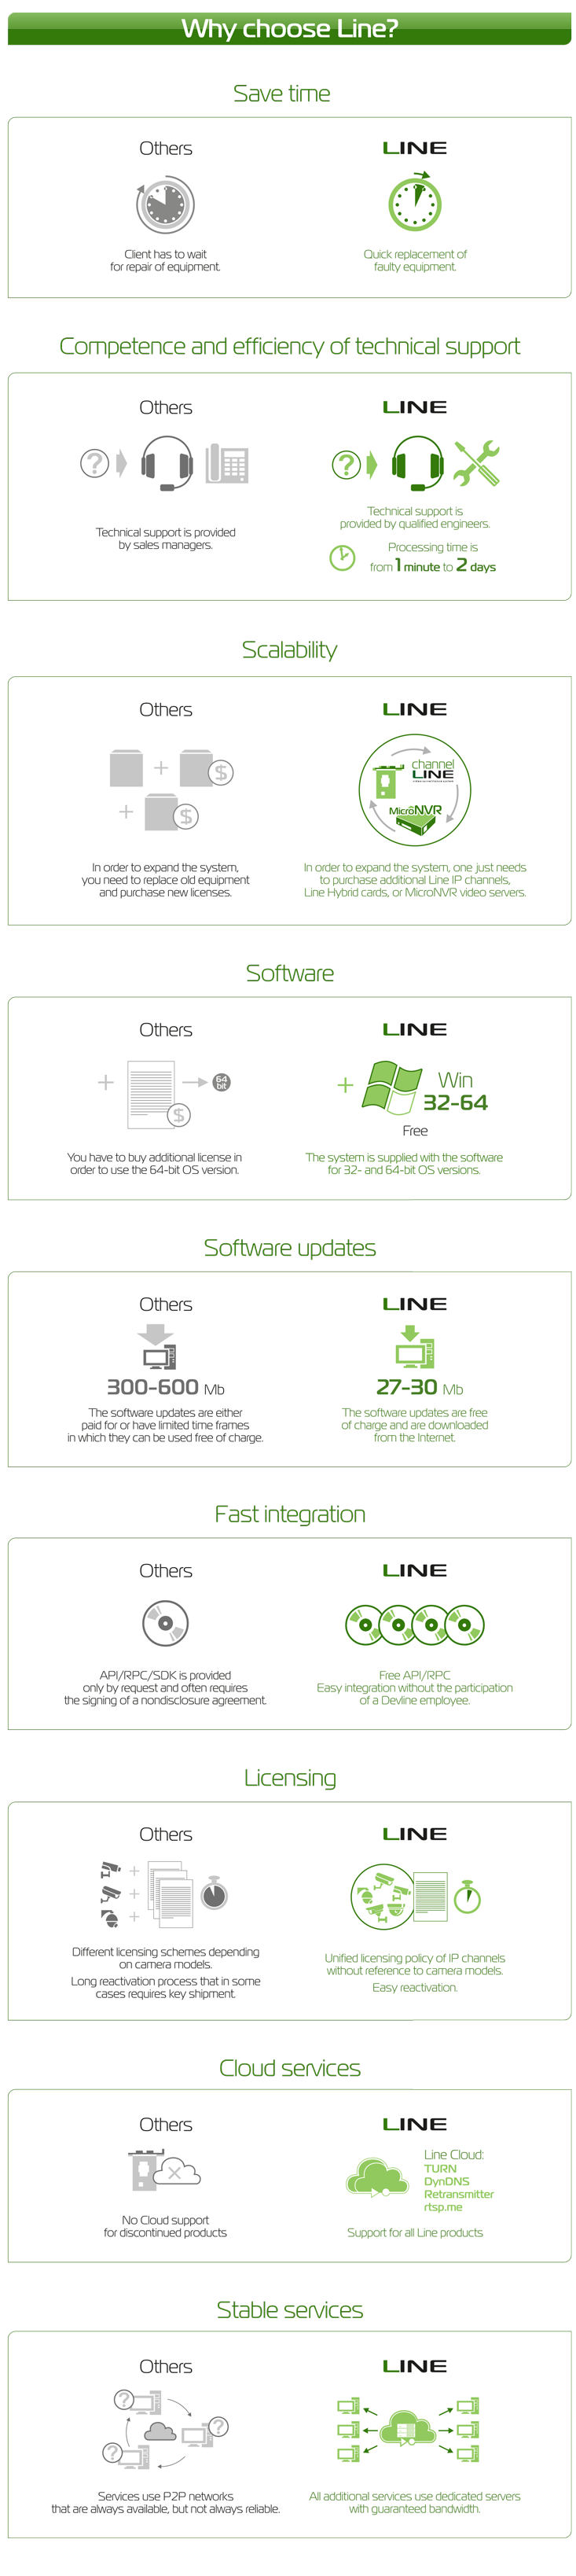 Why Choose Line?